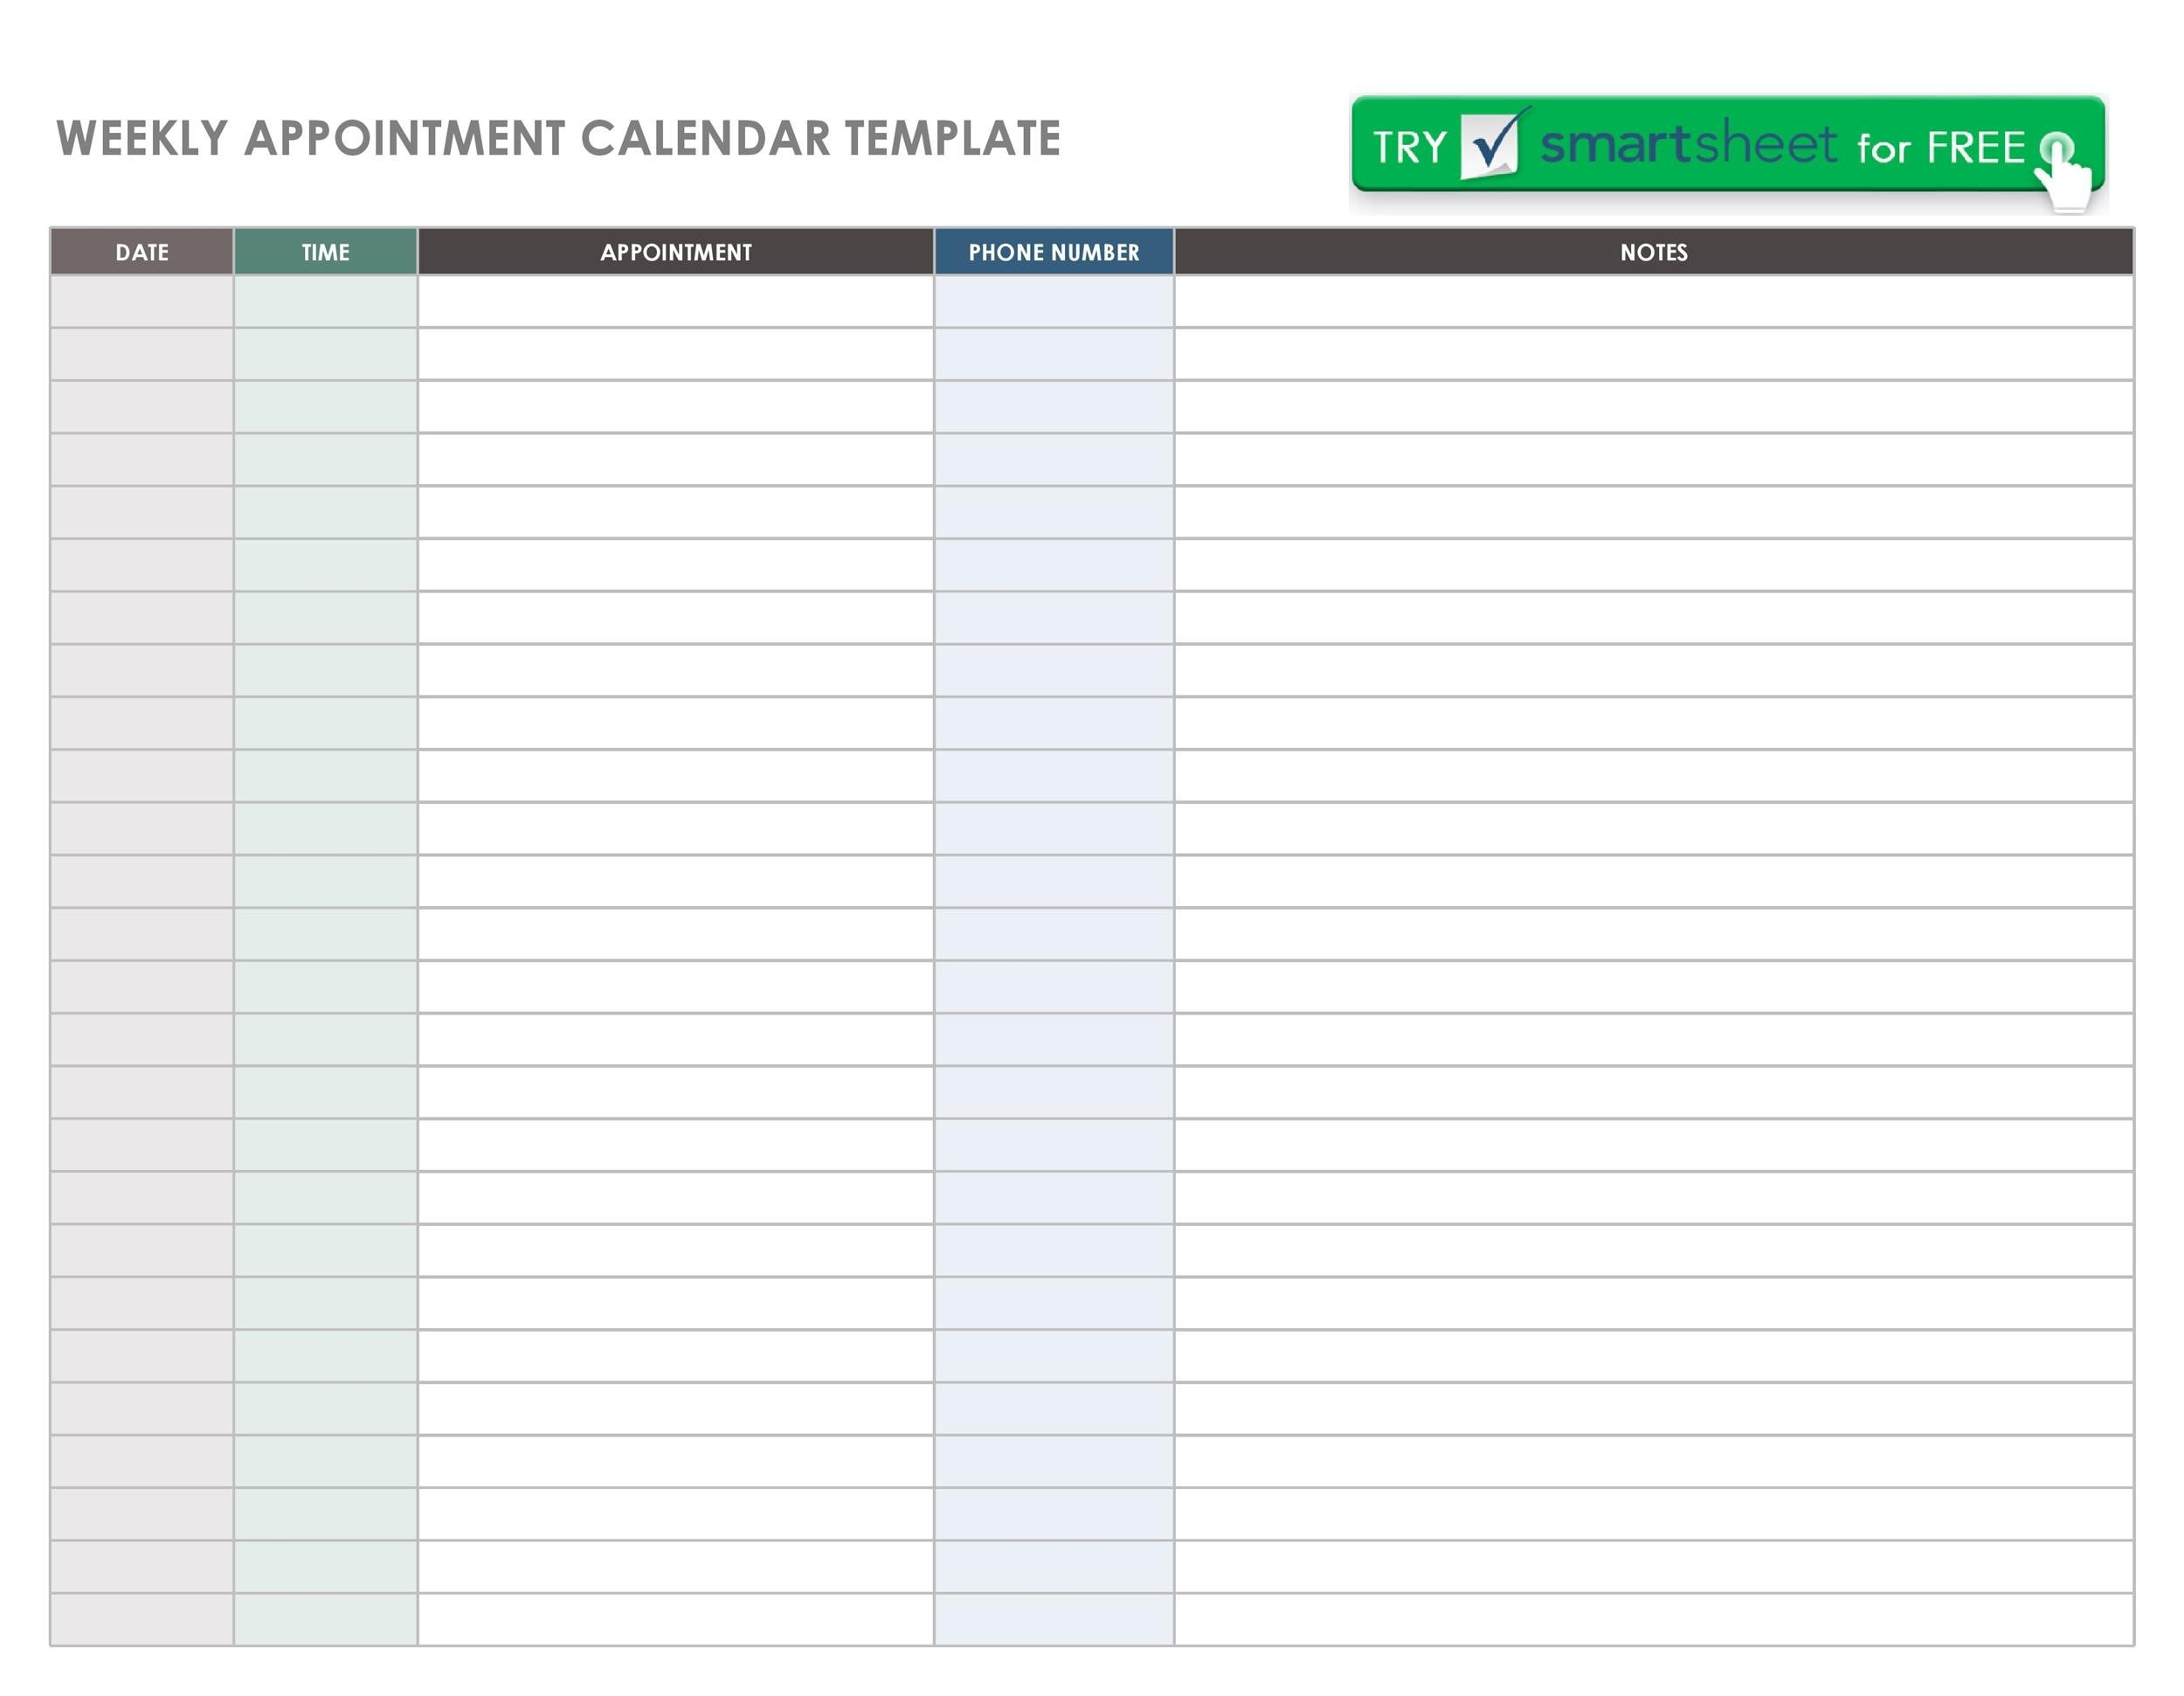 graphic regarding Printable Appointment Sheets called 45 Printable Appointment Program Templates [ Appointment